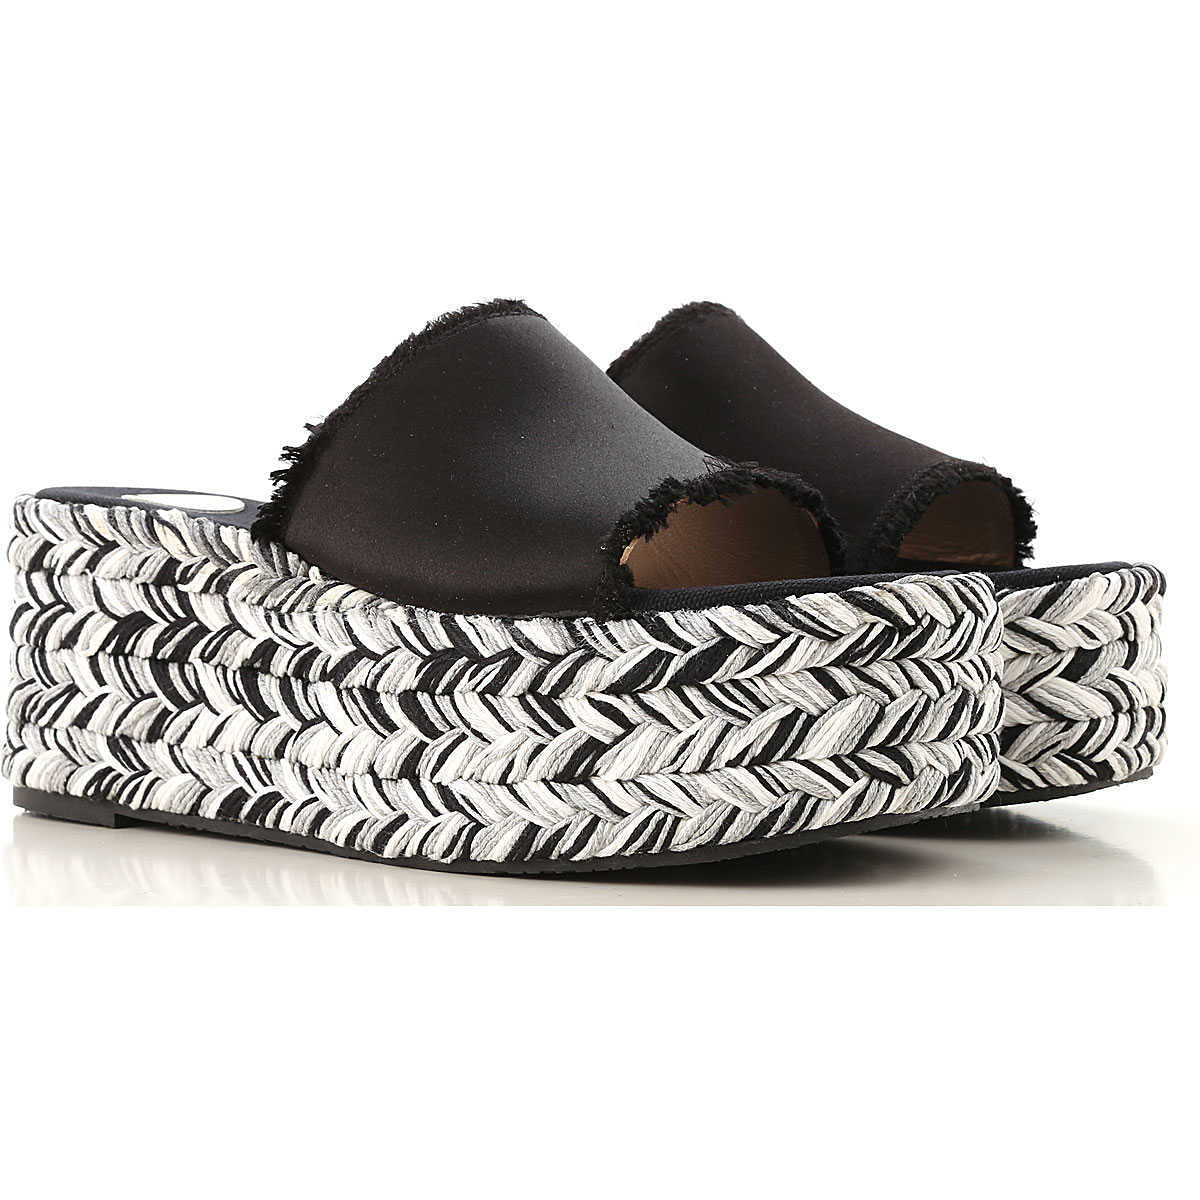 Ras Wedges for Women Black Canada - GOOFASH - Womens HOUSE SHOES